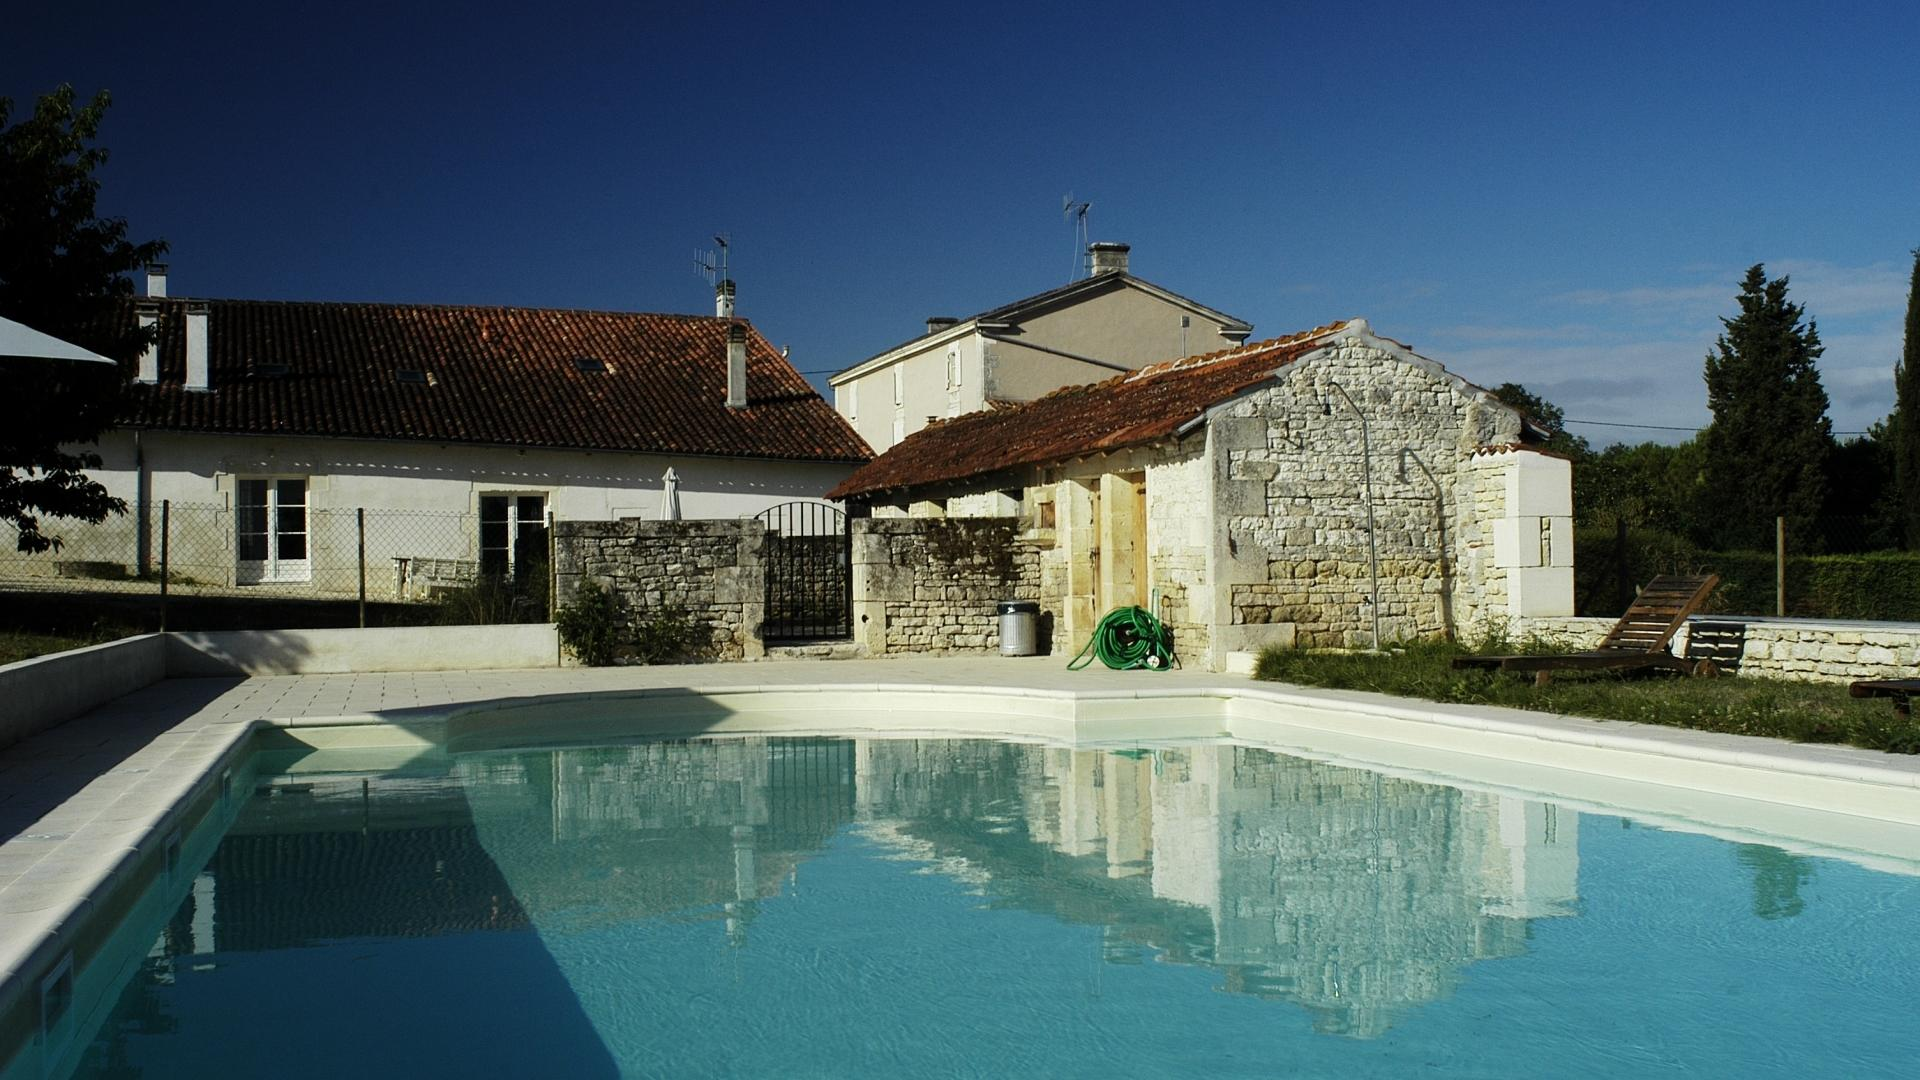 2 Bedroom Cottage/shared facilities in Poitou-Charentes, France